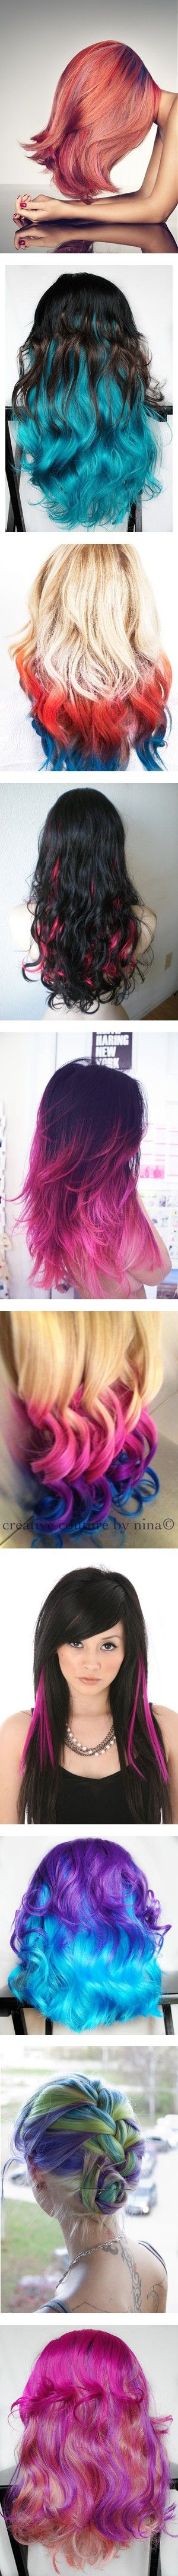 """hair color wild! wats ur favorite style?"" by keren999 ❤ liked on Polyvore"